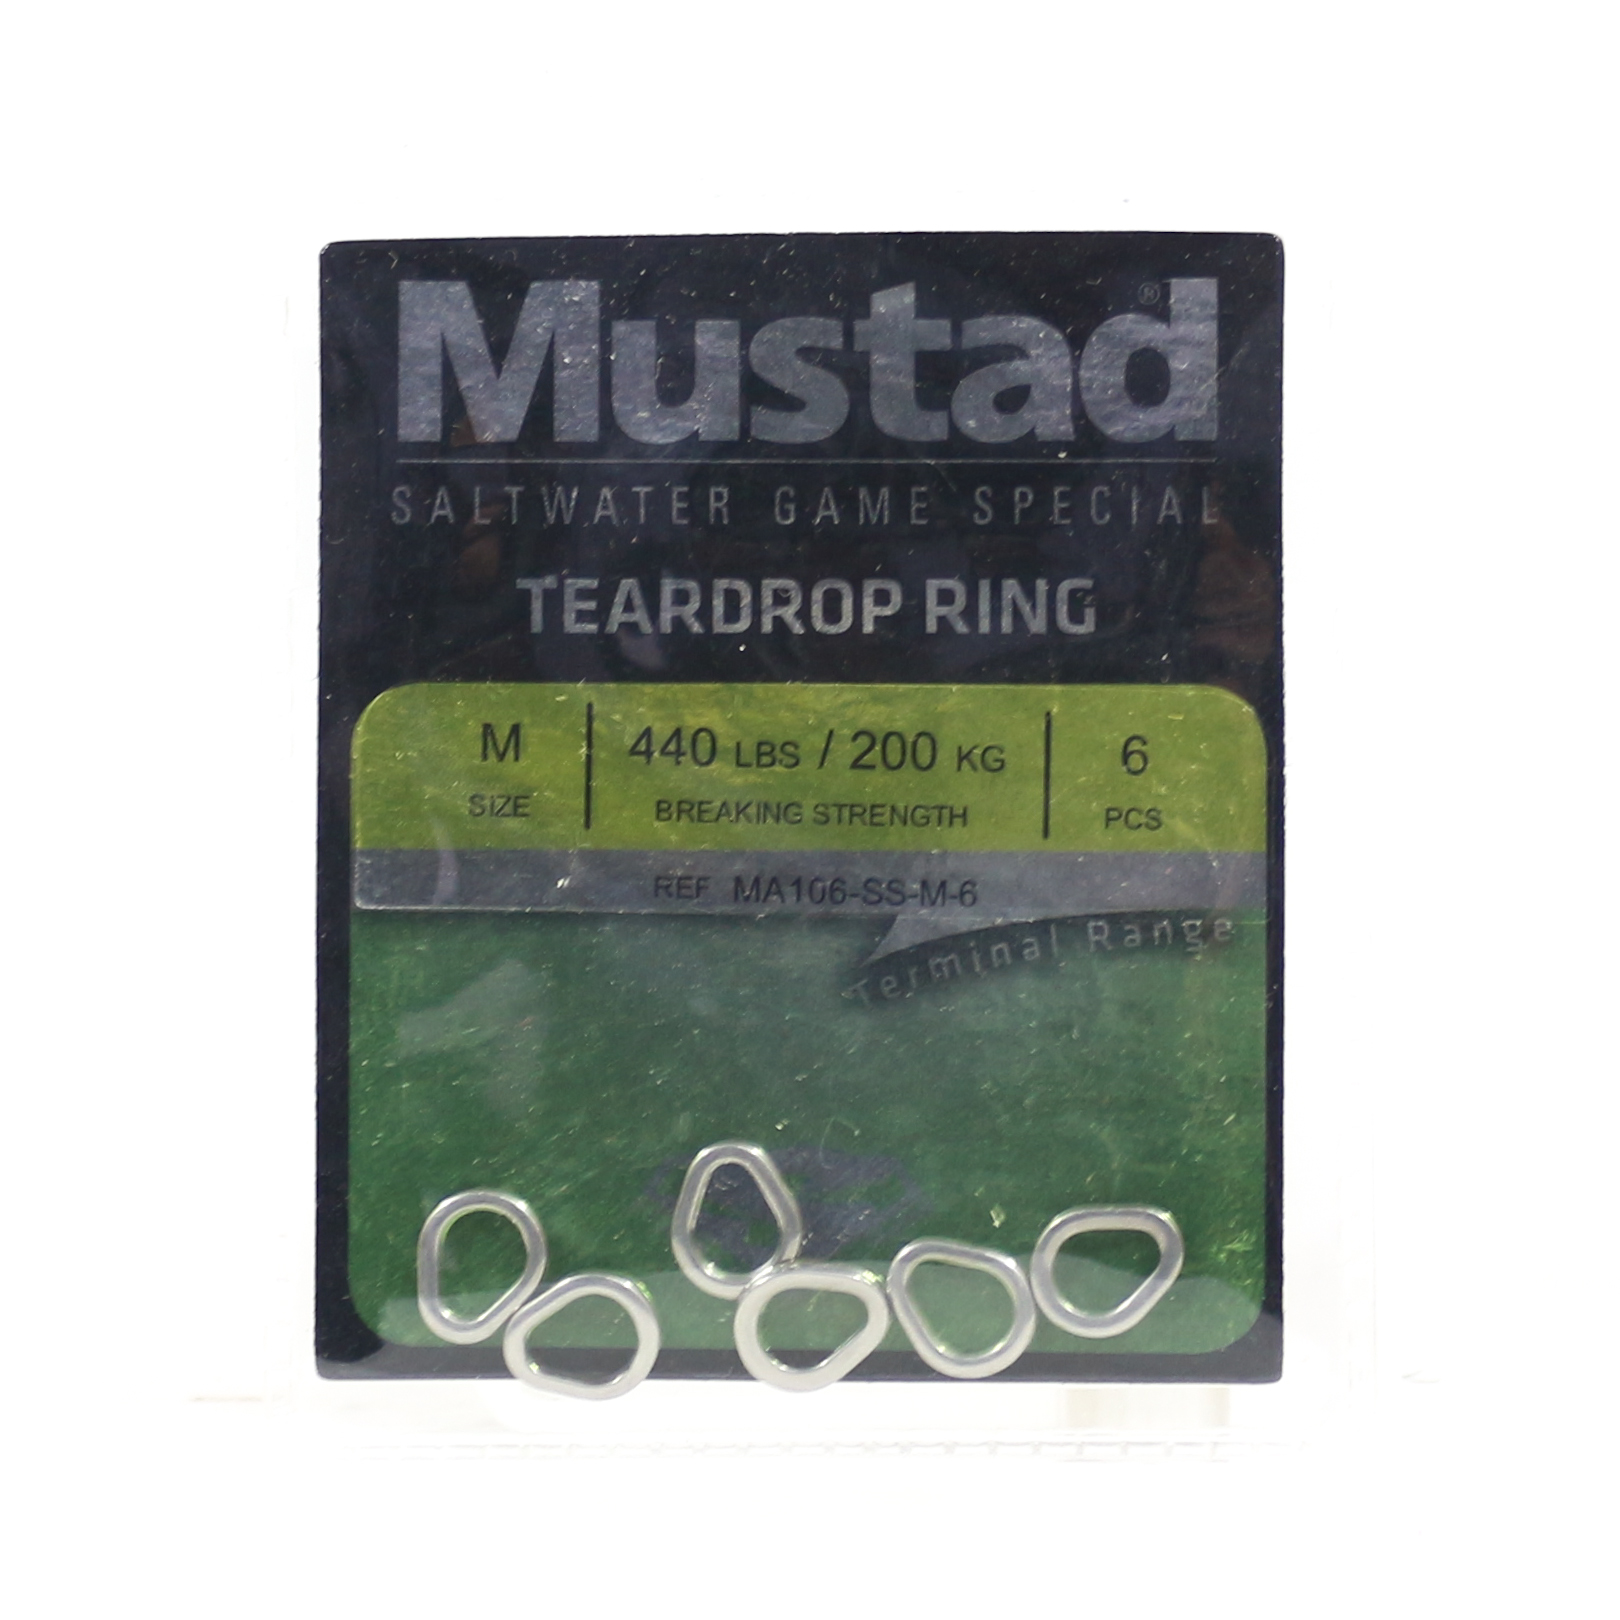 Mustad Solid Ring Teardrop Size M 440Lbs 6 pieces per pack (5276)